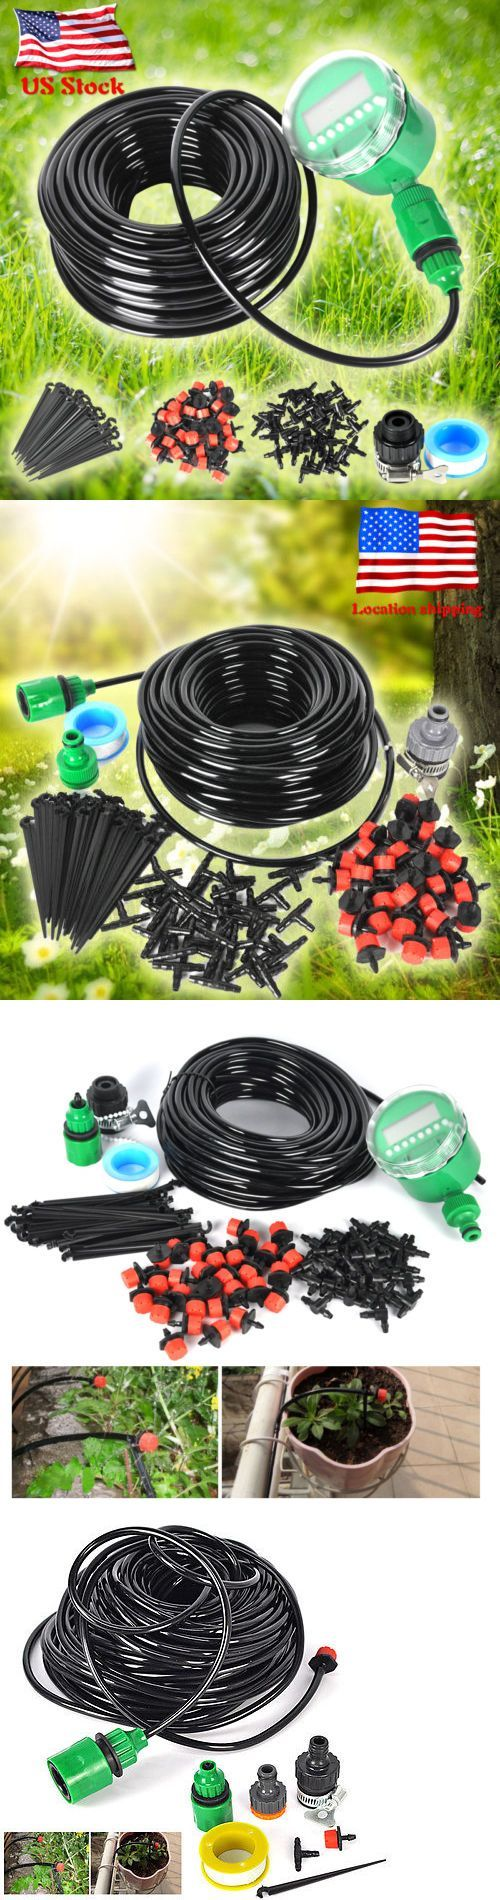 Lawn Sprinklers 20542: 25M Dripper Diy Plant Self Watering Garden Hose Micro Drip Irrigation System Kit -> BUY IT NOW ONLY: $38.29 on eBay!